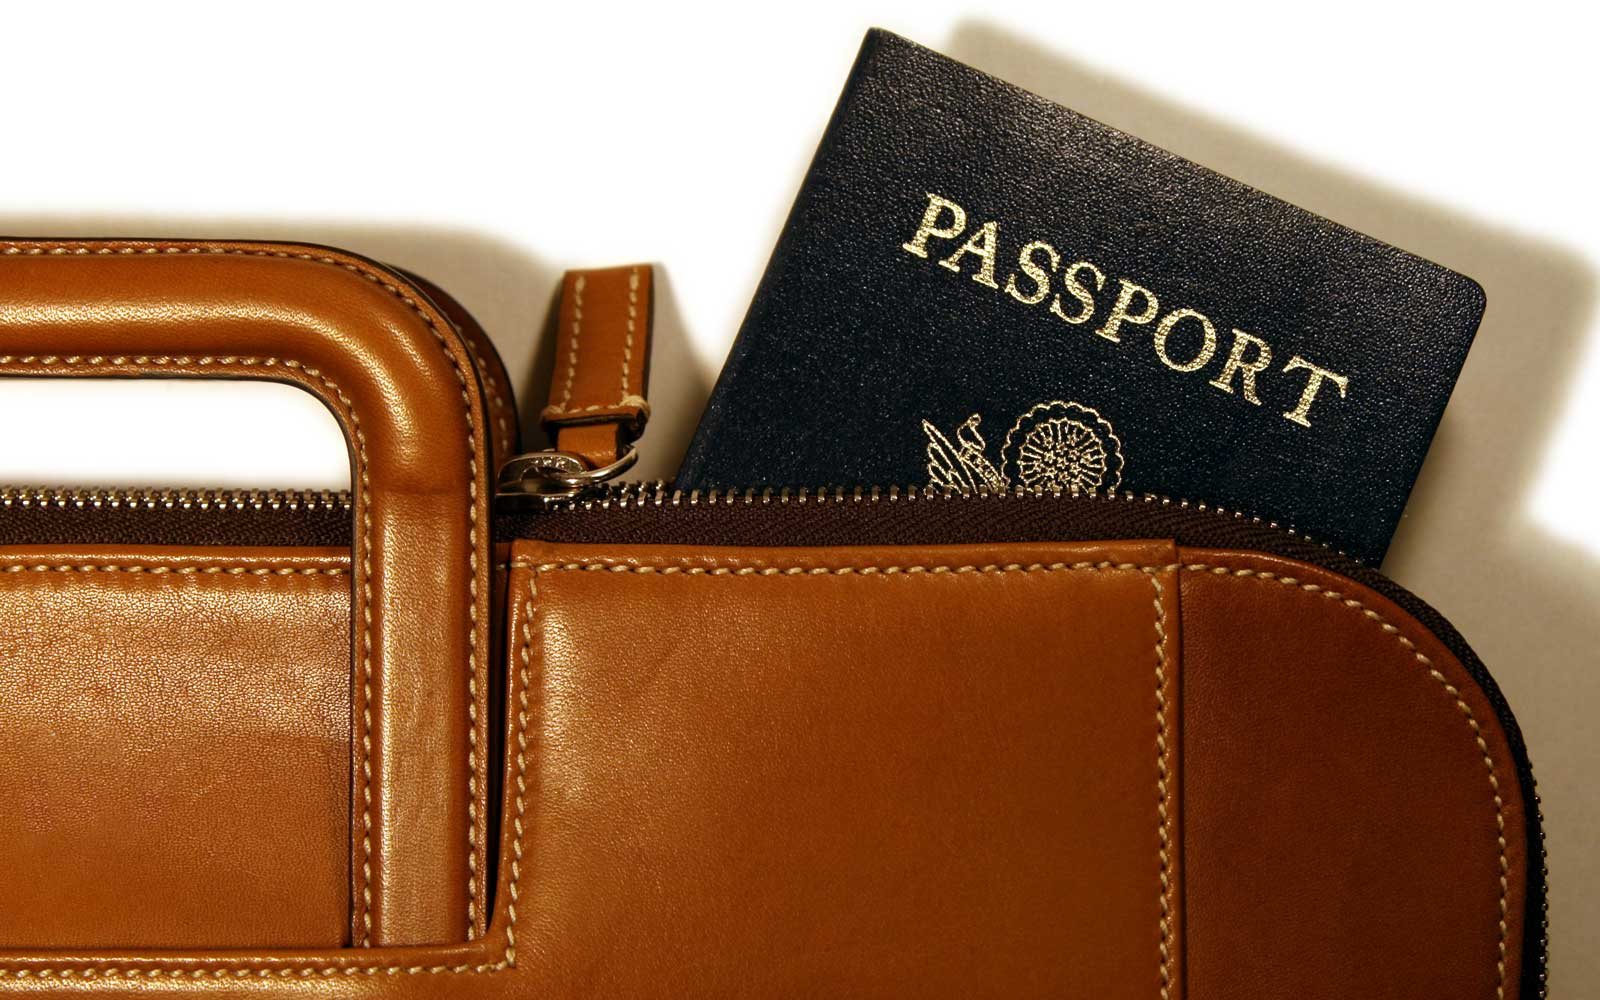 Passport in Carry-on